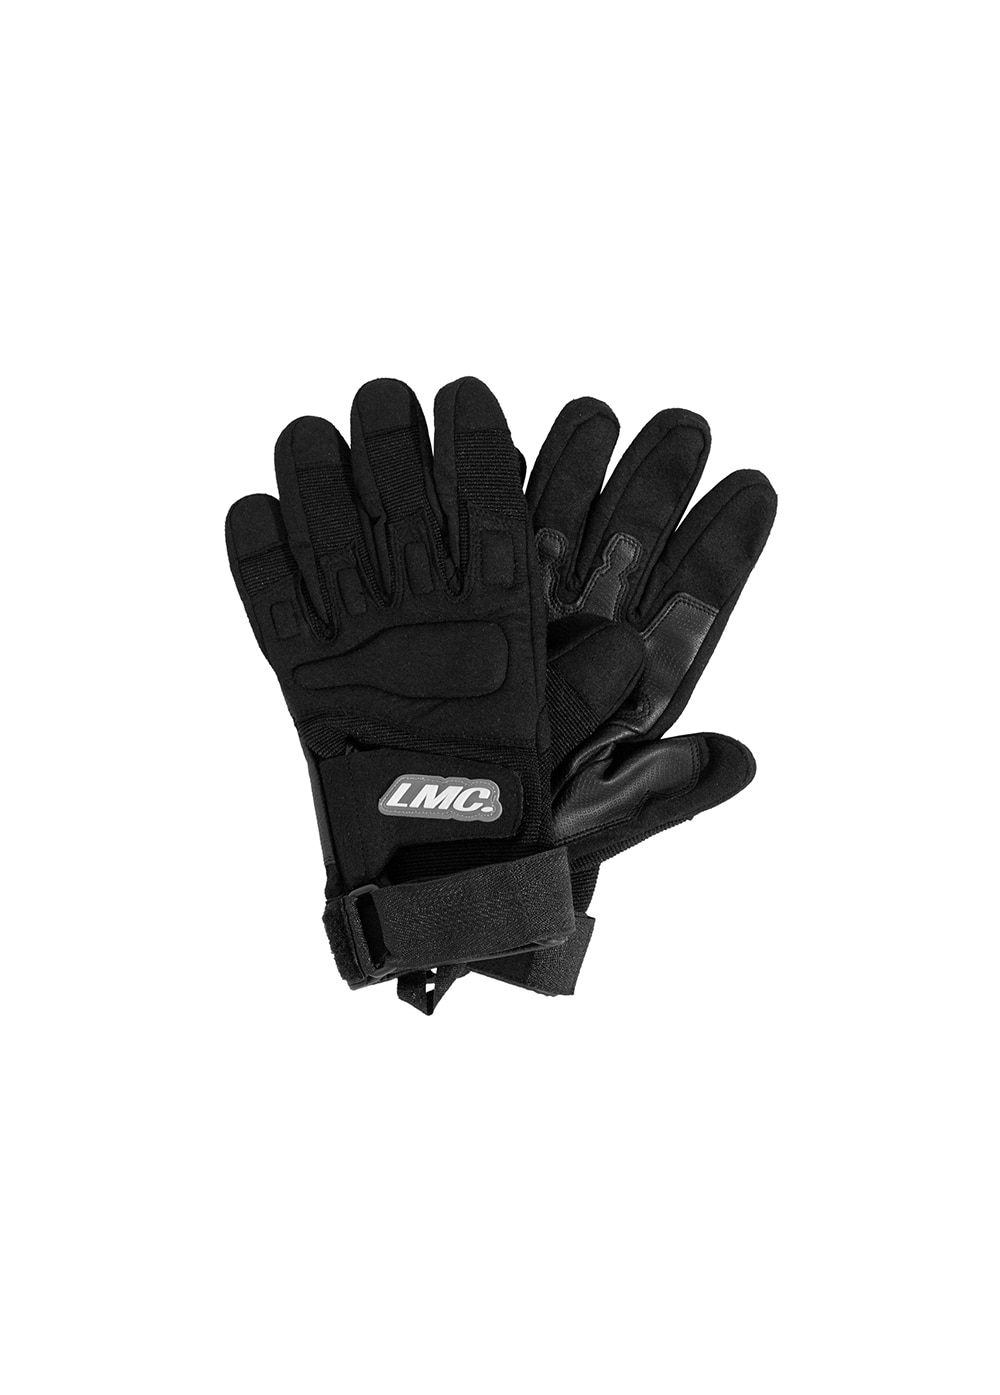 ROTHCO PADDED GLOVE REMADE BY LMC black